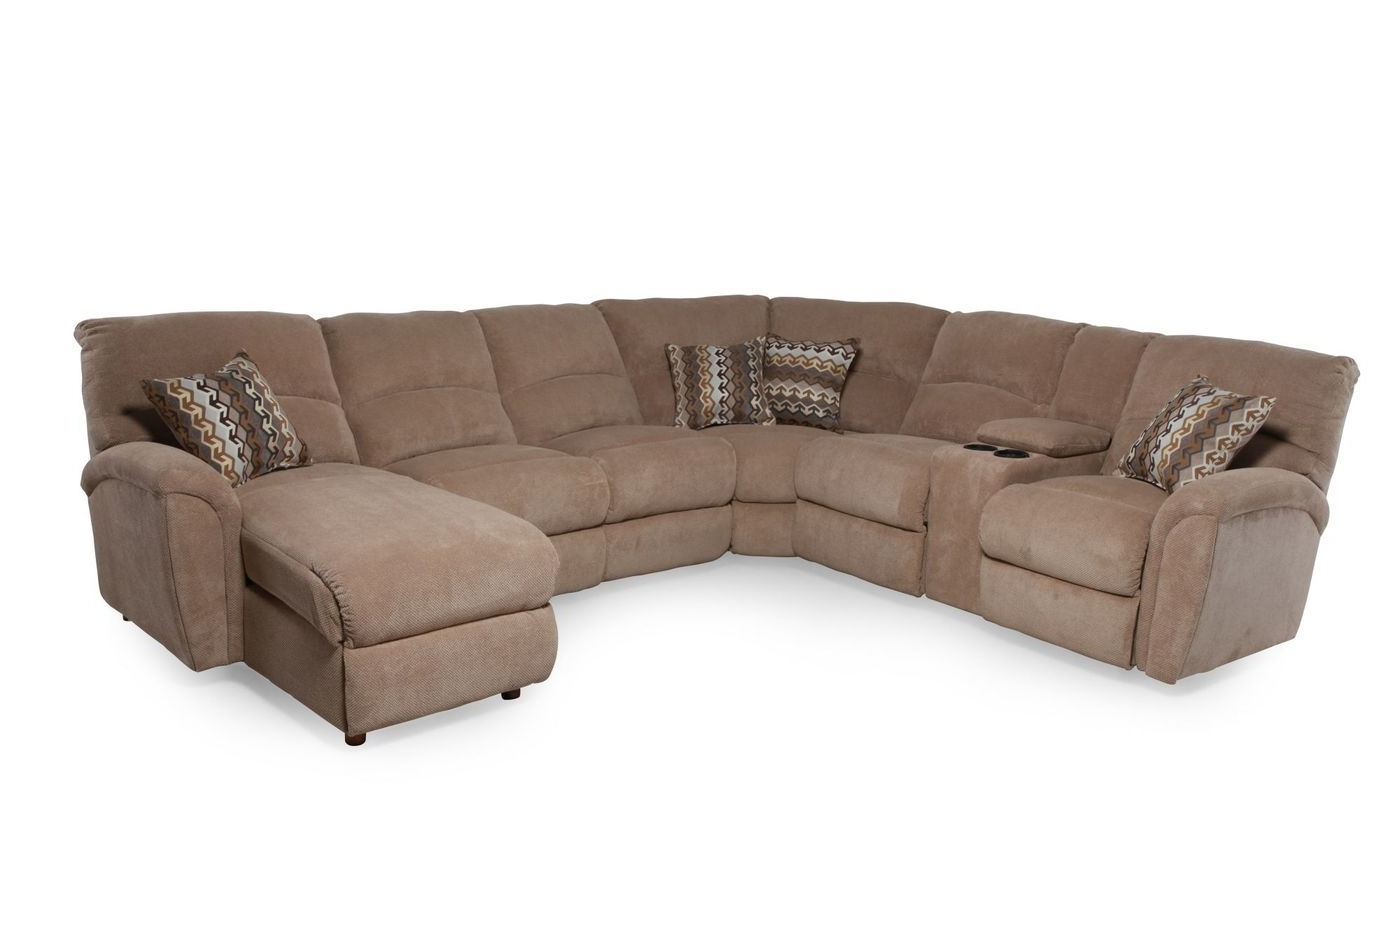 Well Liked Okc Sectional Sofas Within Nice Sectional Sofas Okc , Elegant Sectional Sofas Okc 60 On Sofa (View 15 of 15)